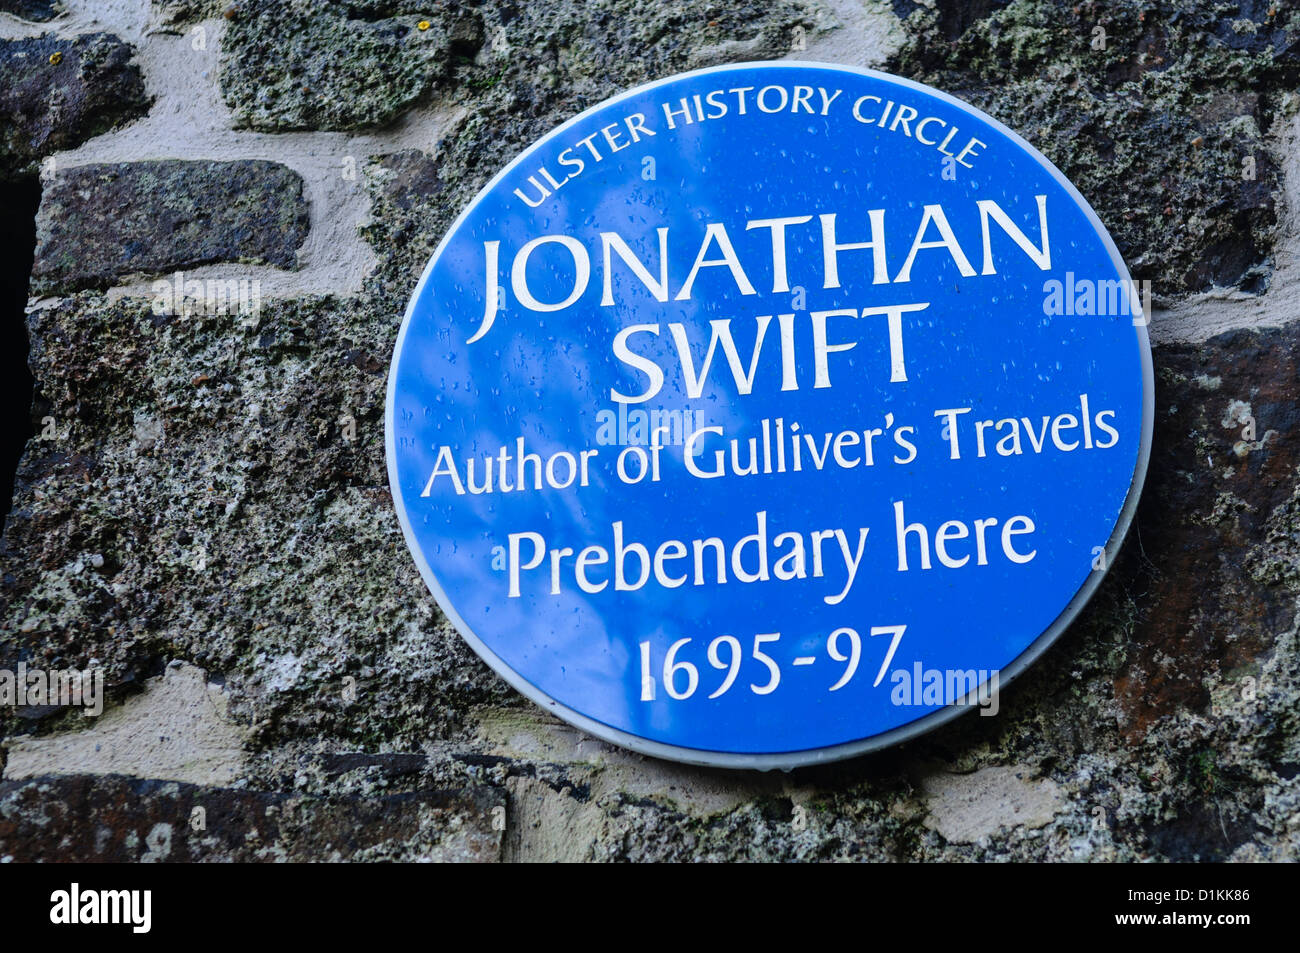 Blue plaque in Ballynure for Jonathan Swift, author of Gulliver's Travels - Stock Image